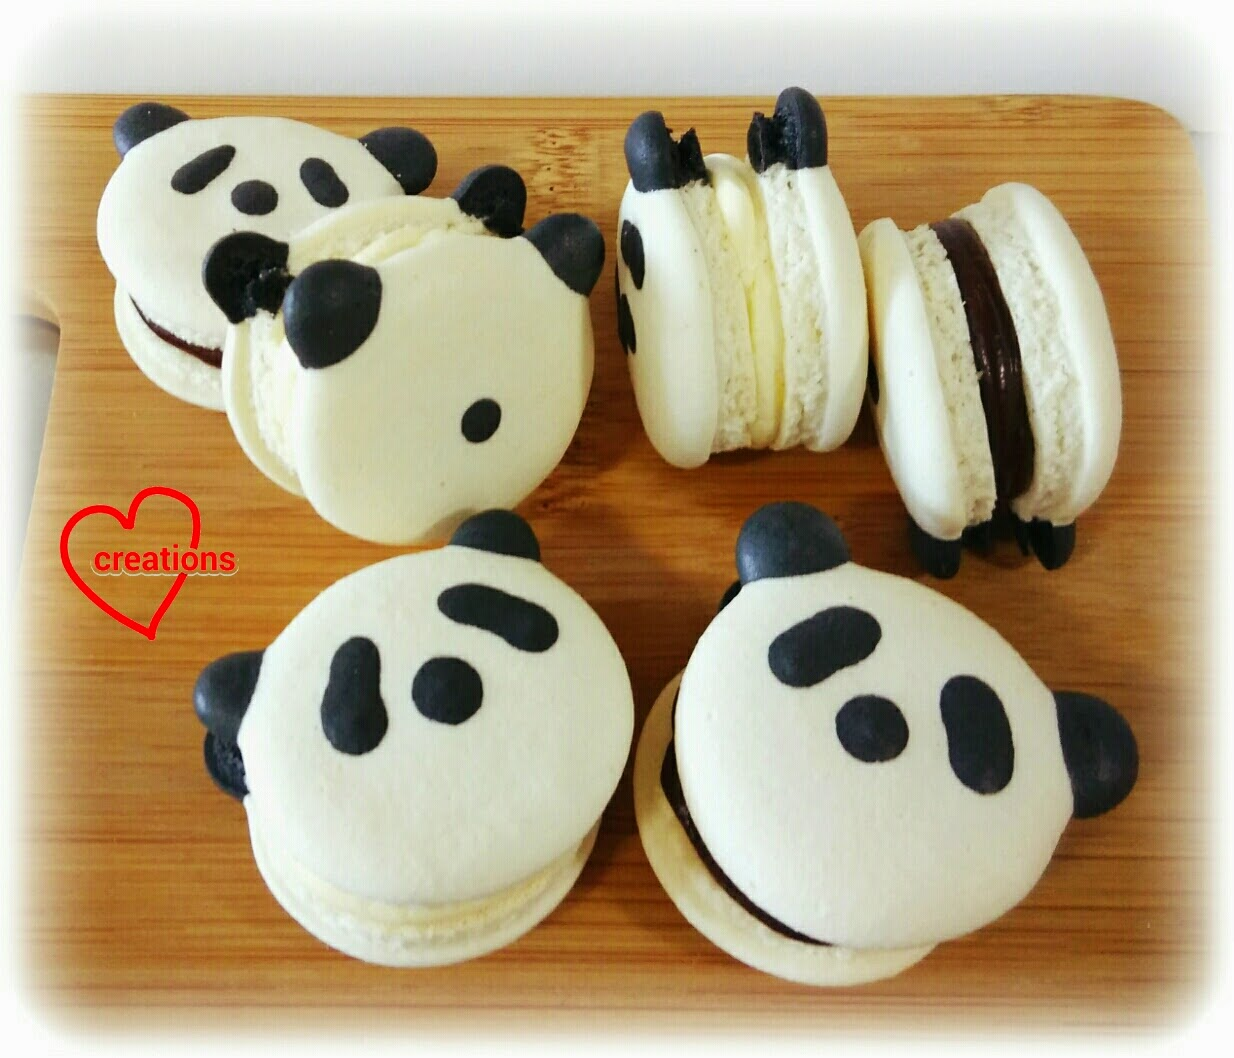 Loving Creations For You Panda Macarons With Lemon And